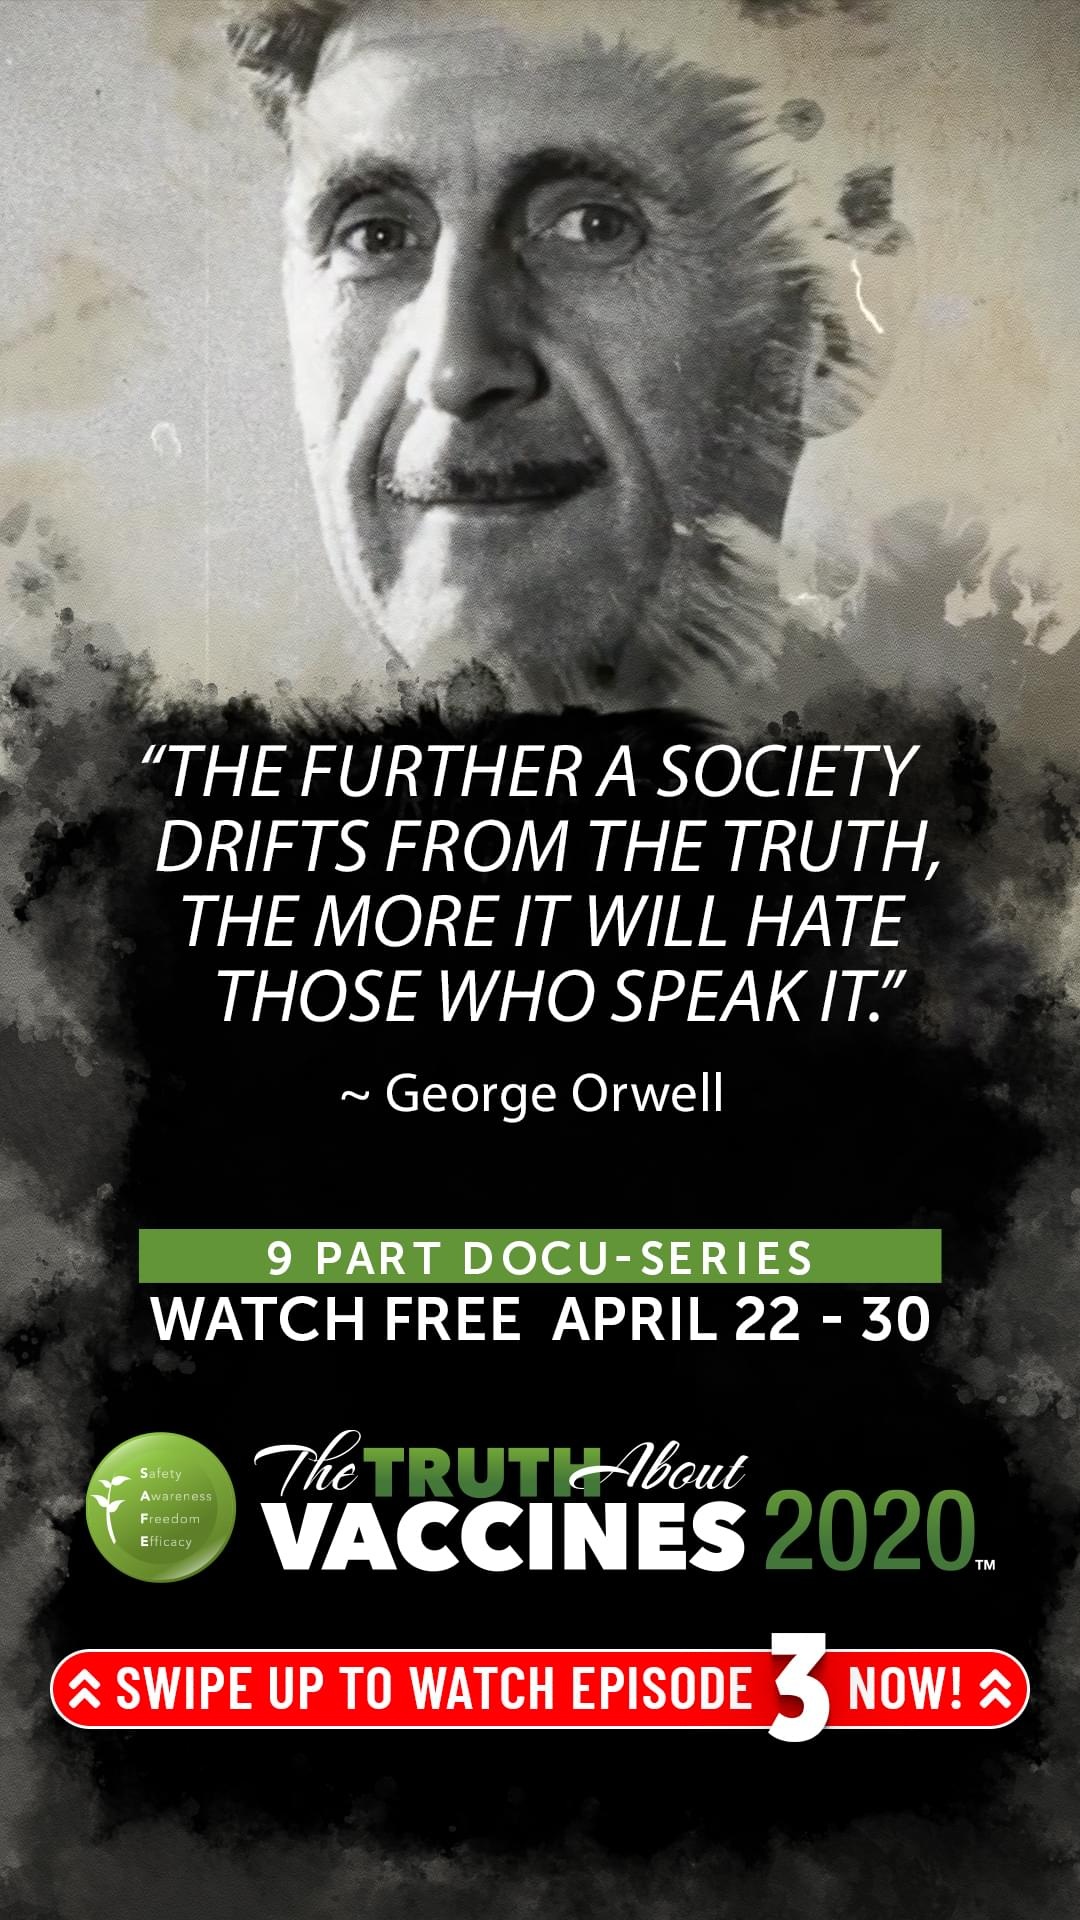 TTAV-ep03-Video_Quotes-George_Orwell-IG-1080X1920-SWIPE-min